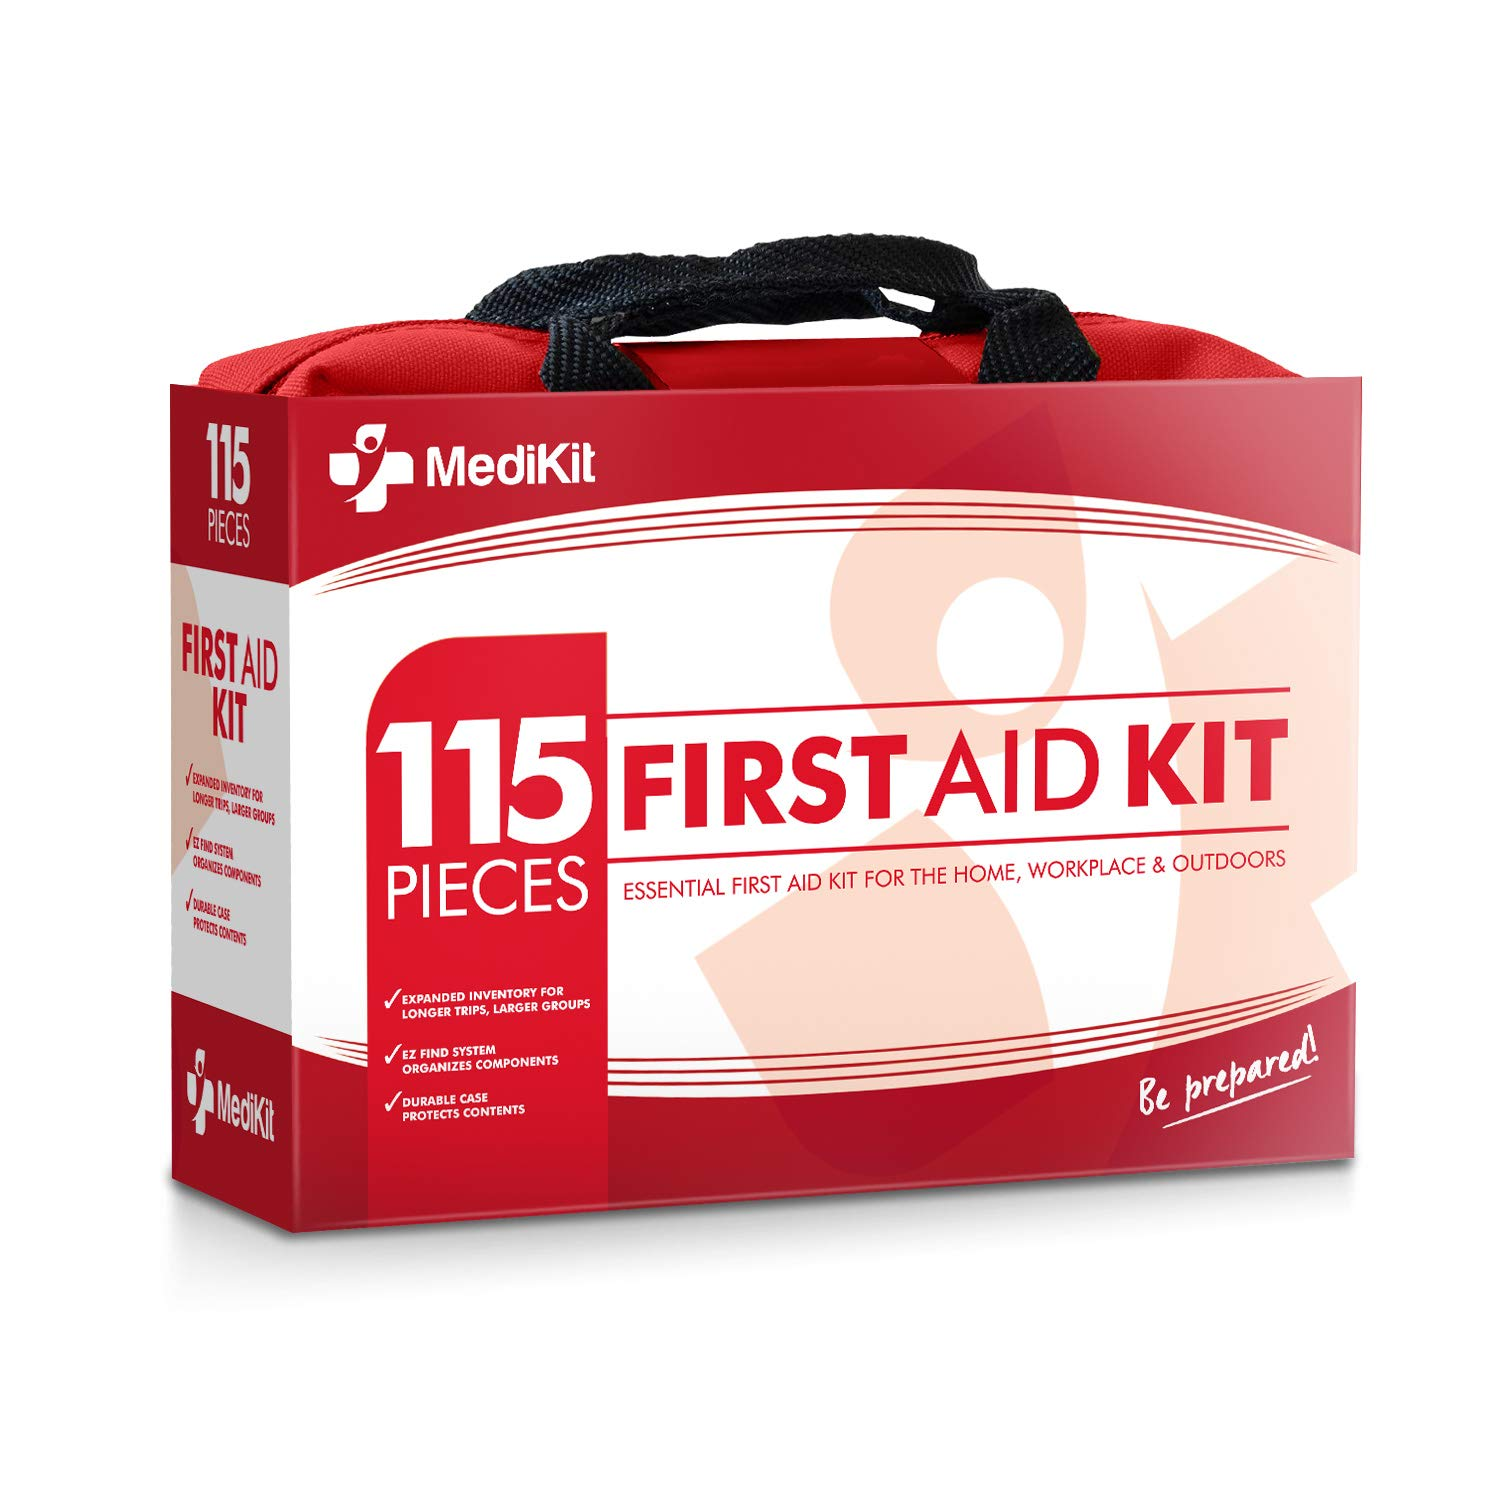 MediKit-Deluxe-First-Aid-Kit-115-Items-The-Most-Essential-First-Aid-Supplies-for-Home-Sports-Travel-Camping-Office-and-The-Workplace---Red-